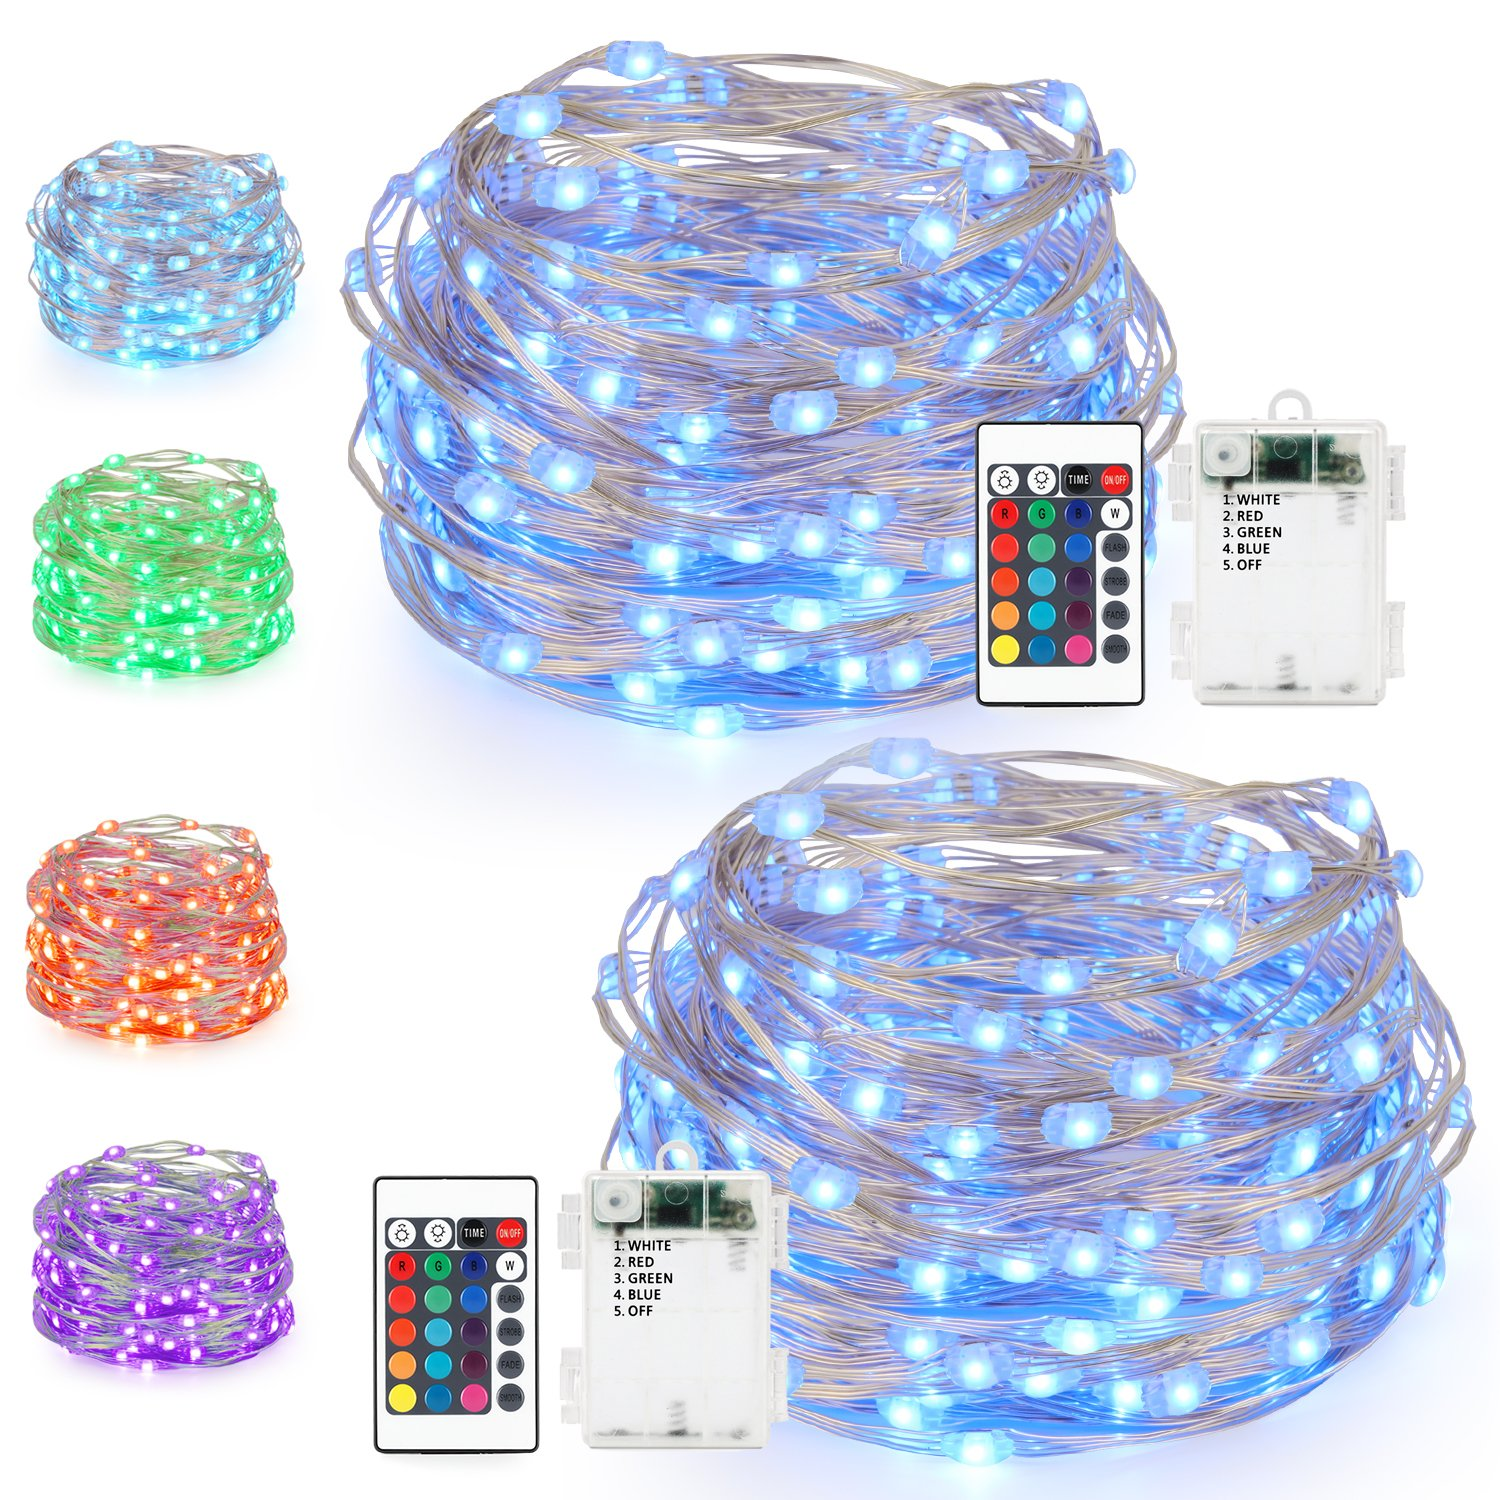 LED String Lights,Battery Powered Multi Color Changing String Lights with Remote,50 LEDs Indoor Decorative Silver Wire Lights for Bedroom,Patio,Outdoor Garden,Stroller,Christmas Tree 16ft, 2 Packs